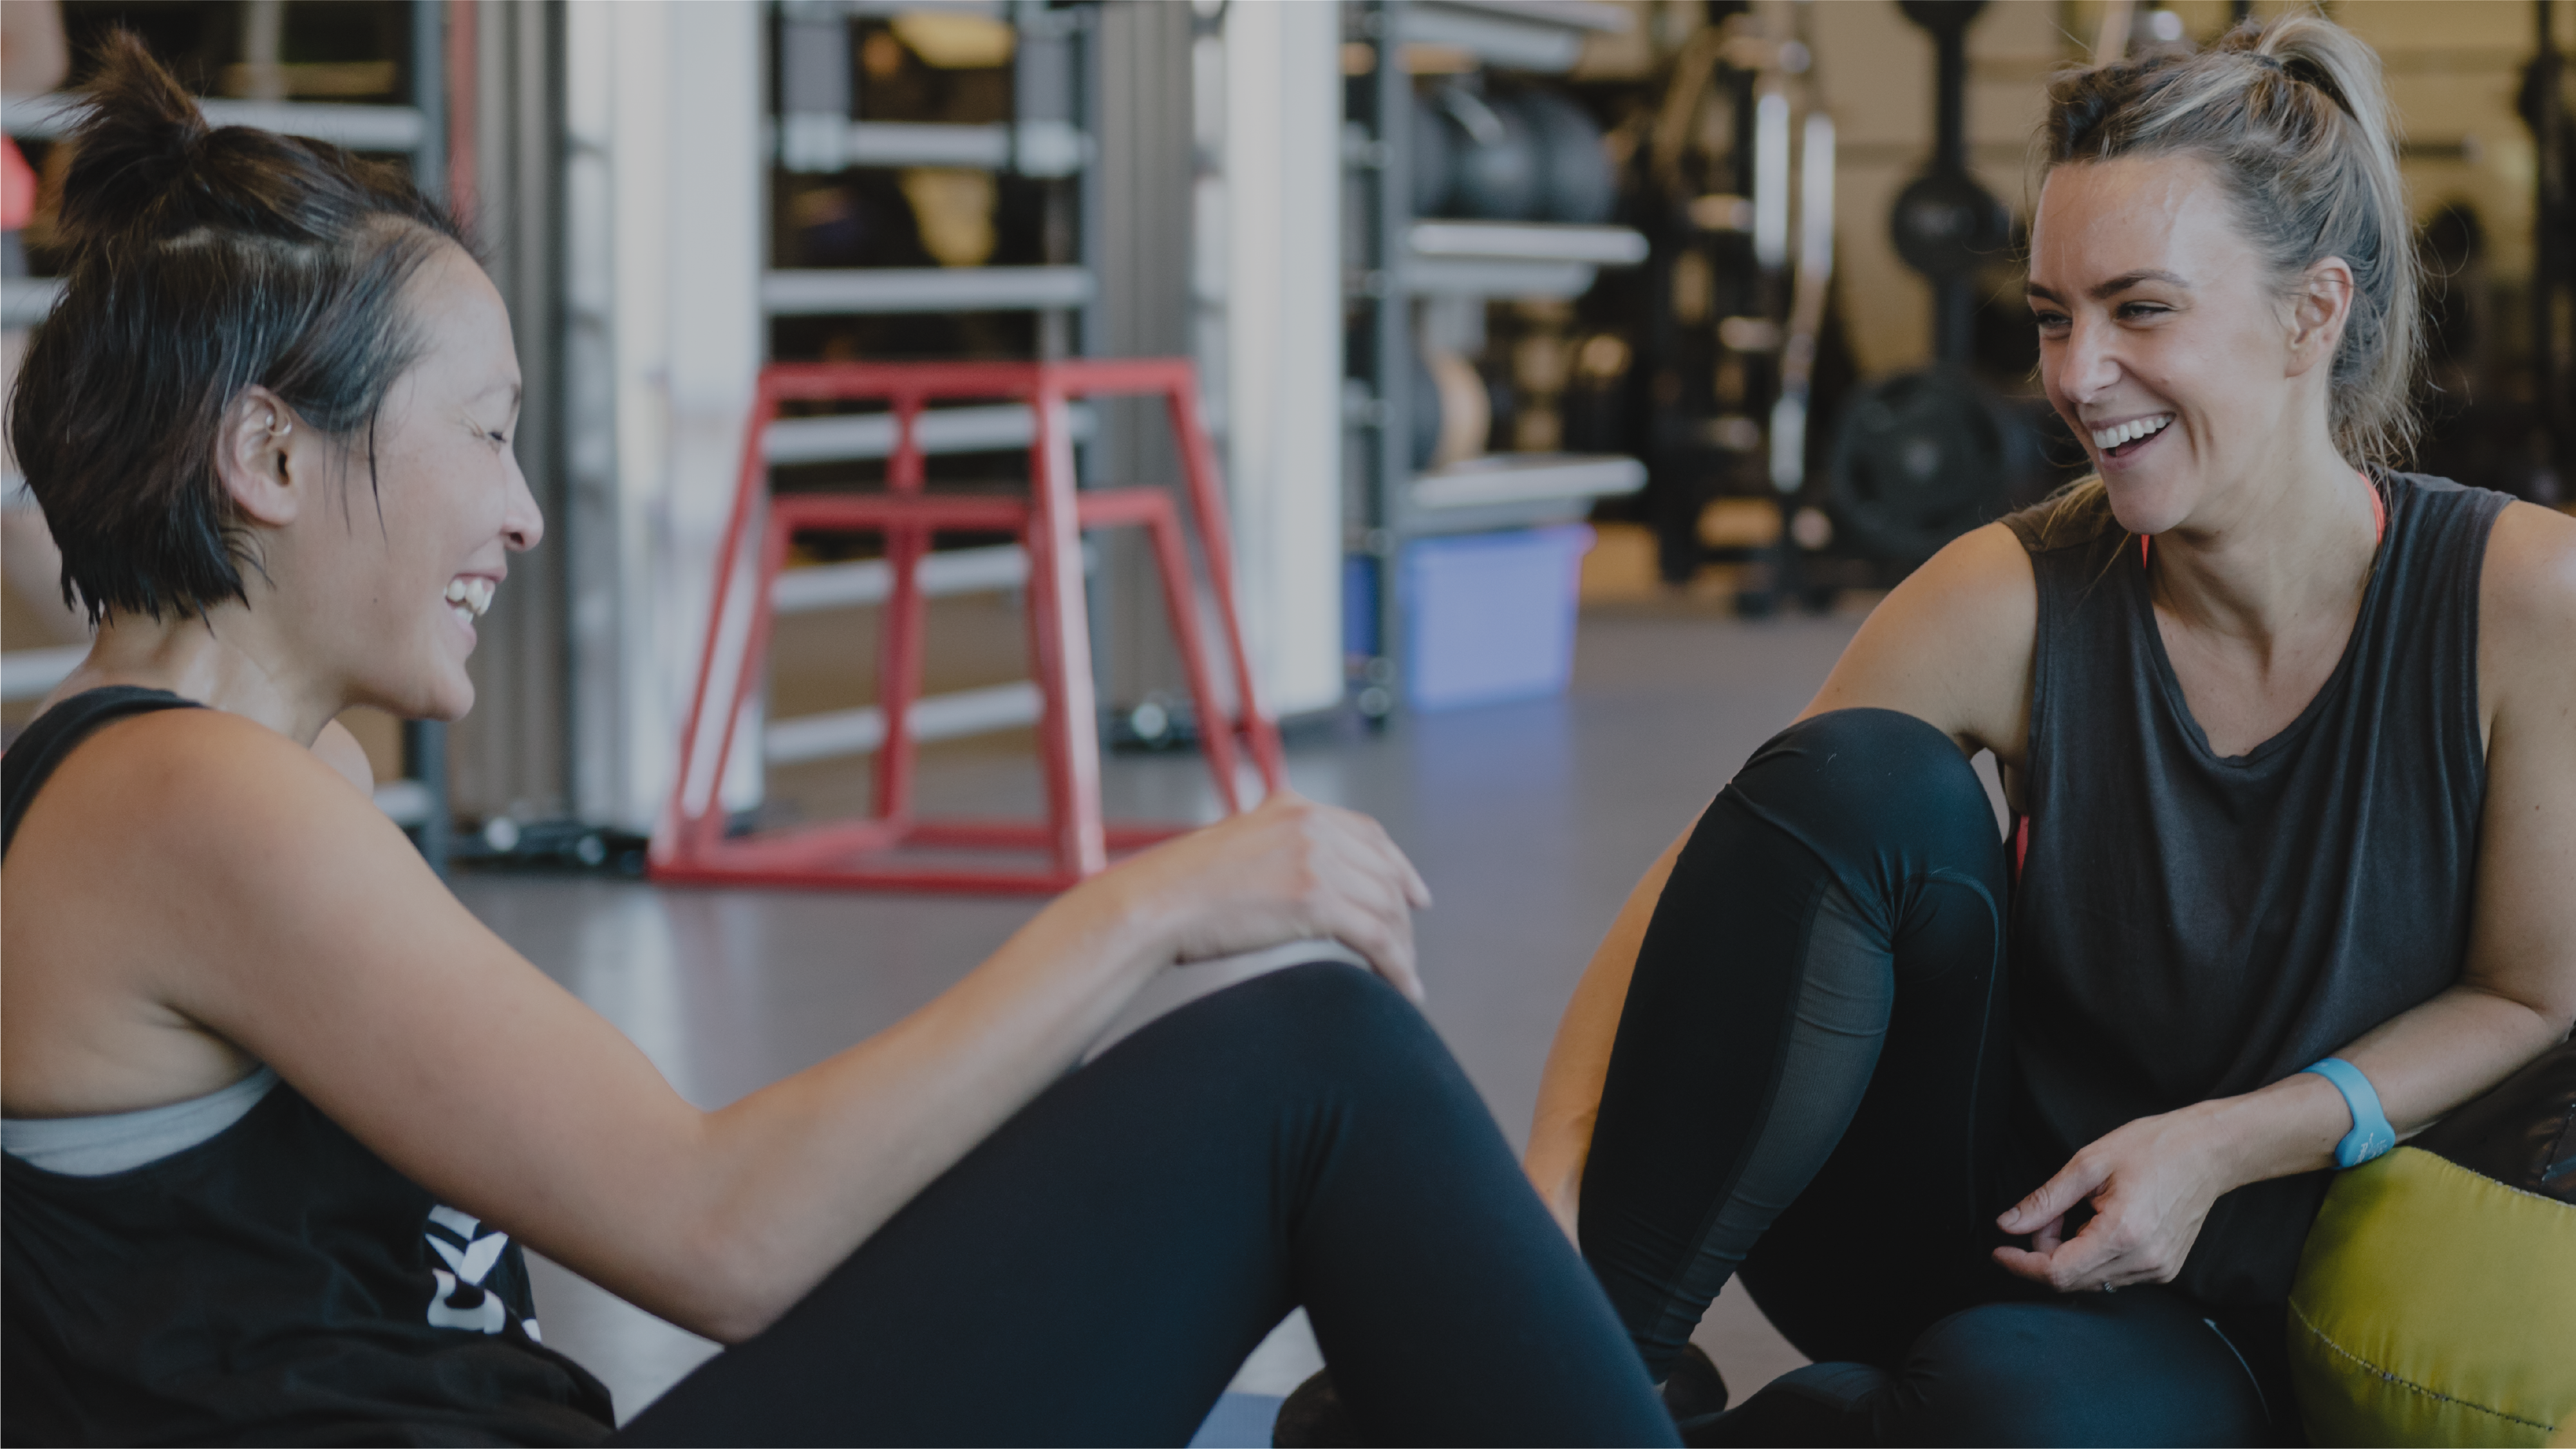 Two girls talking in the gym